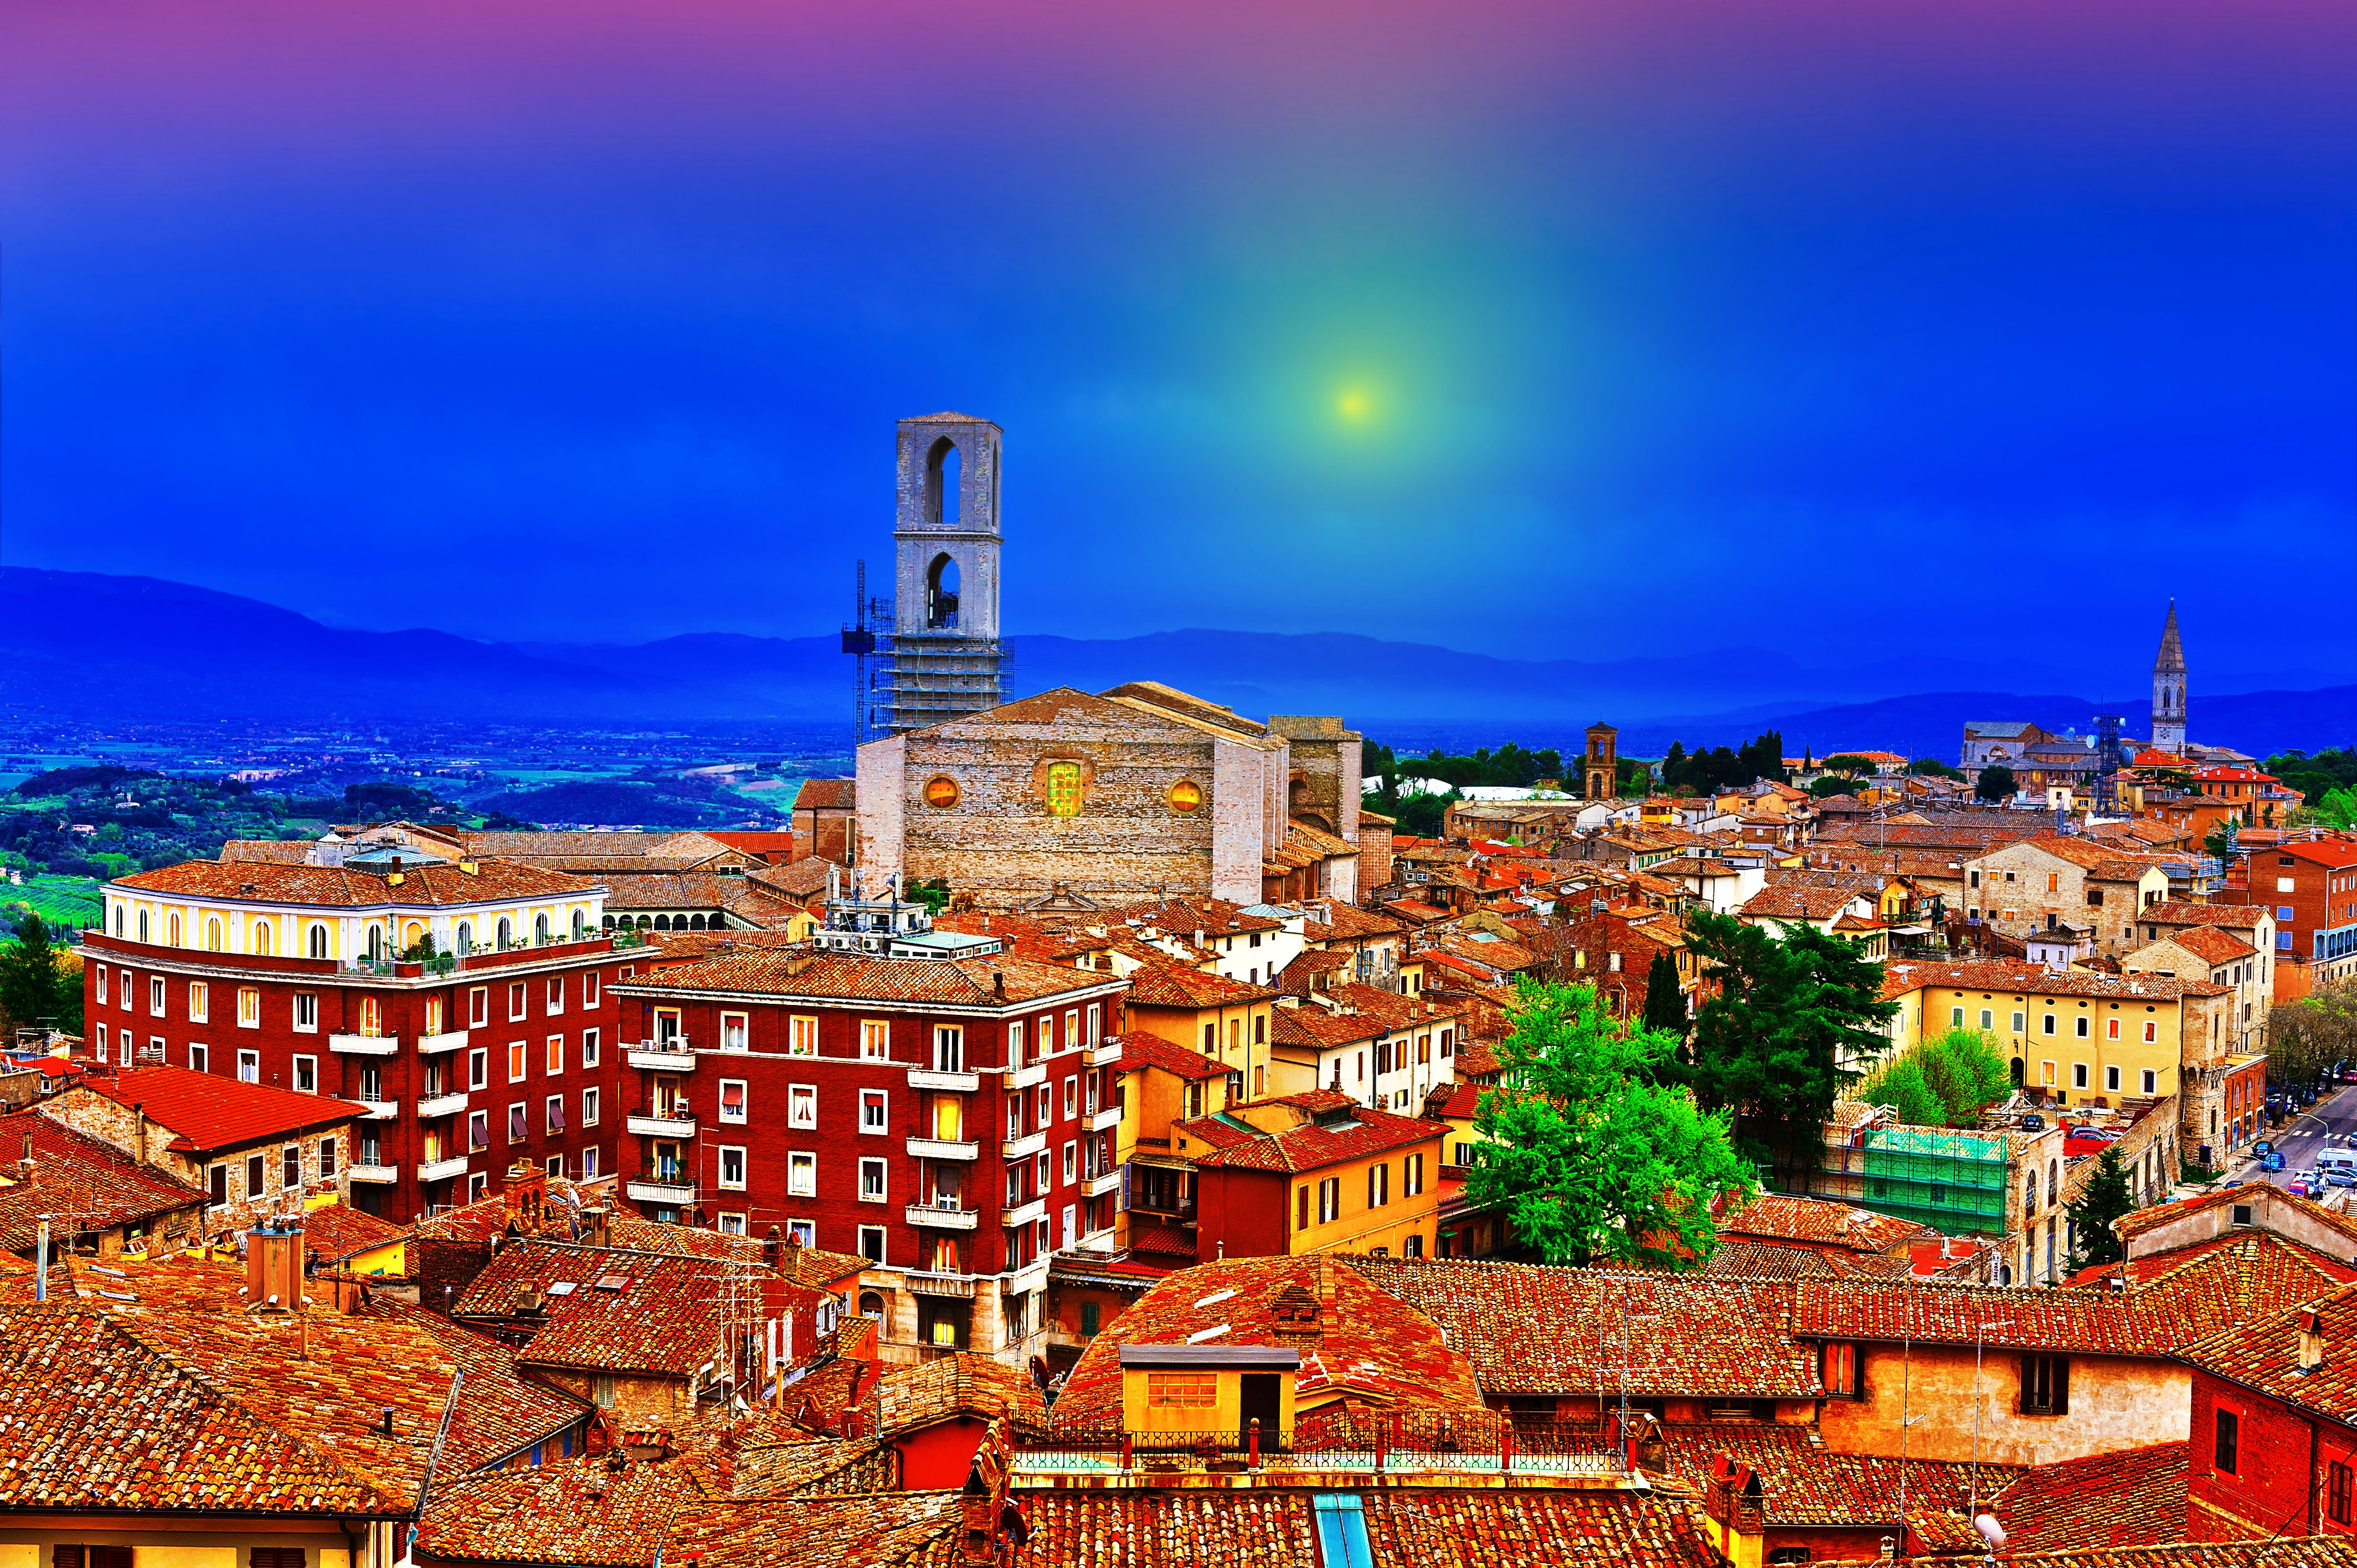 Perugia, one of Italy's hidden gems